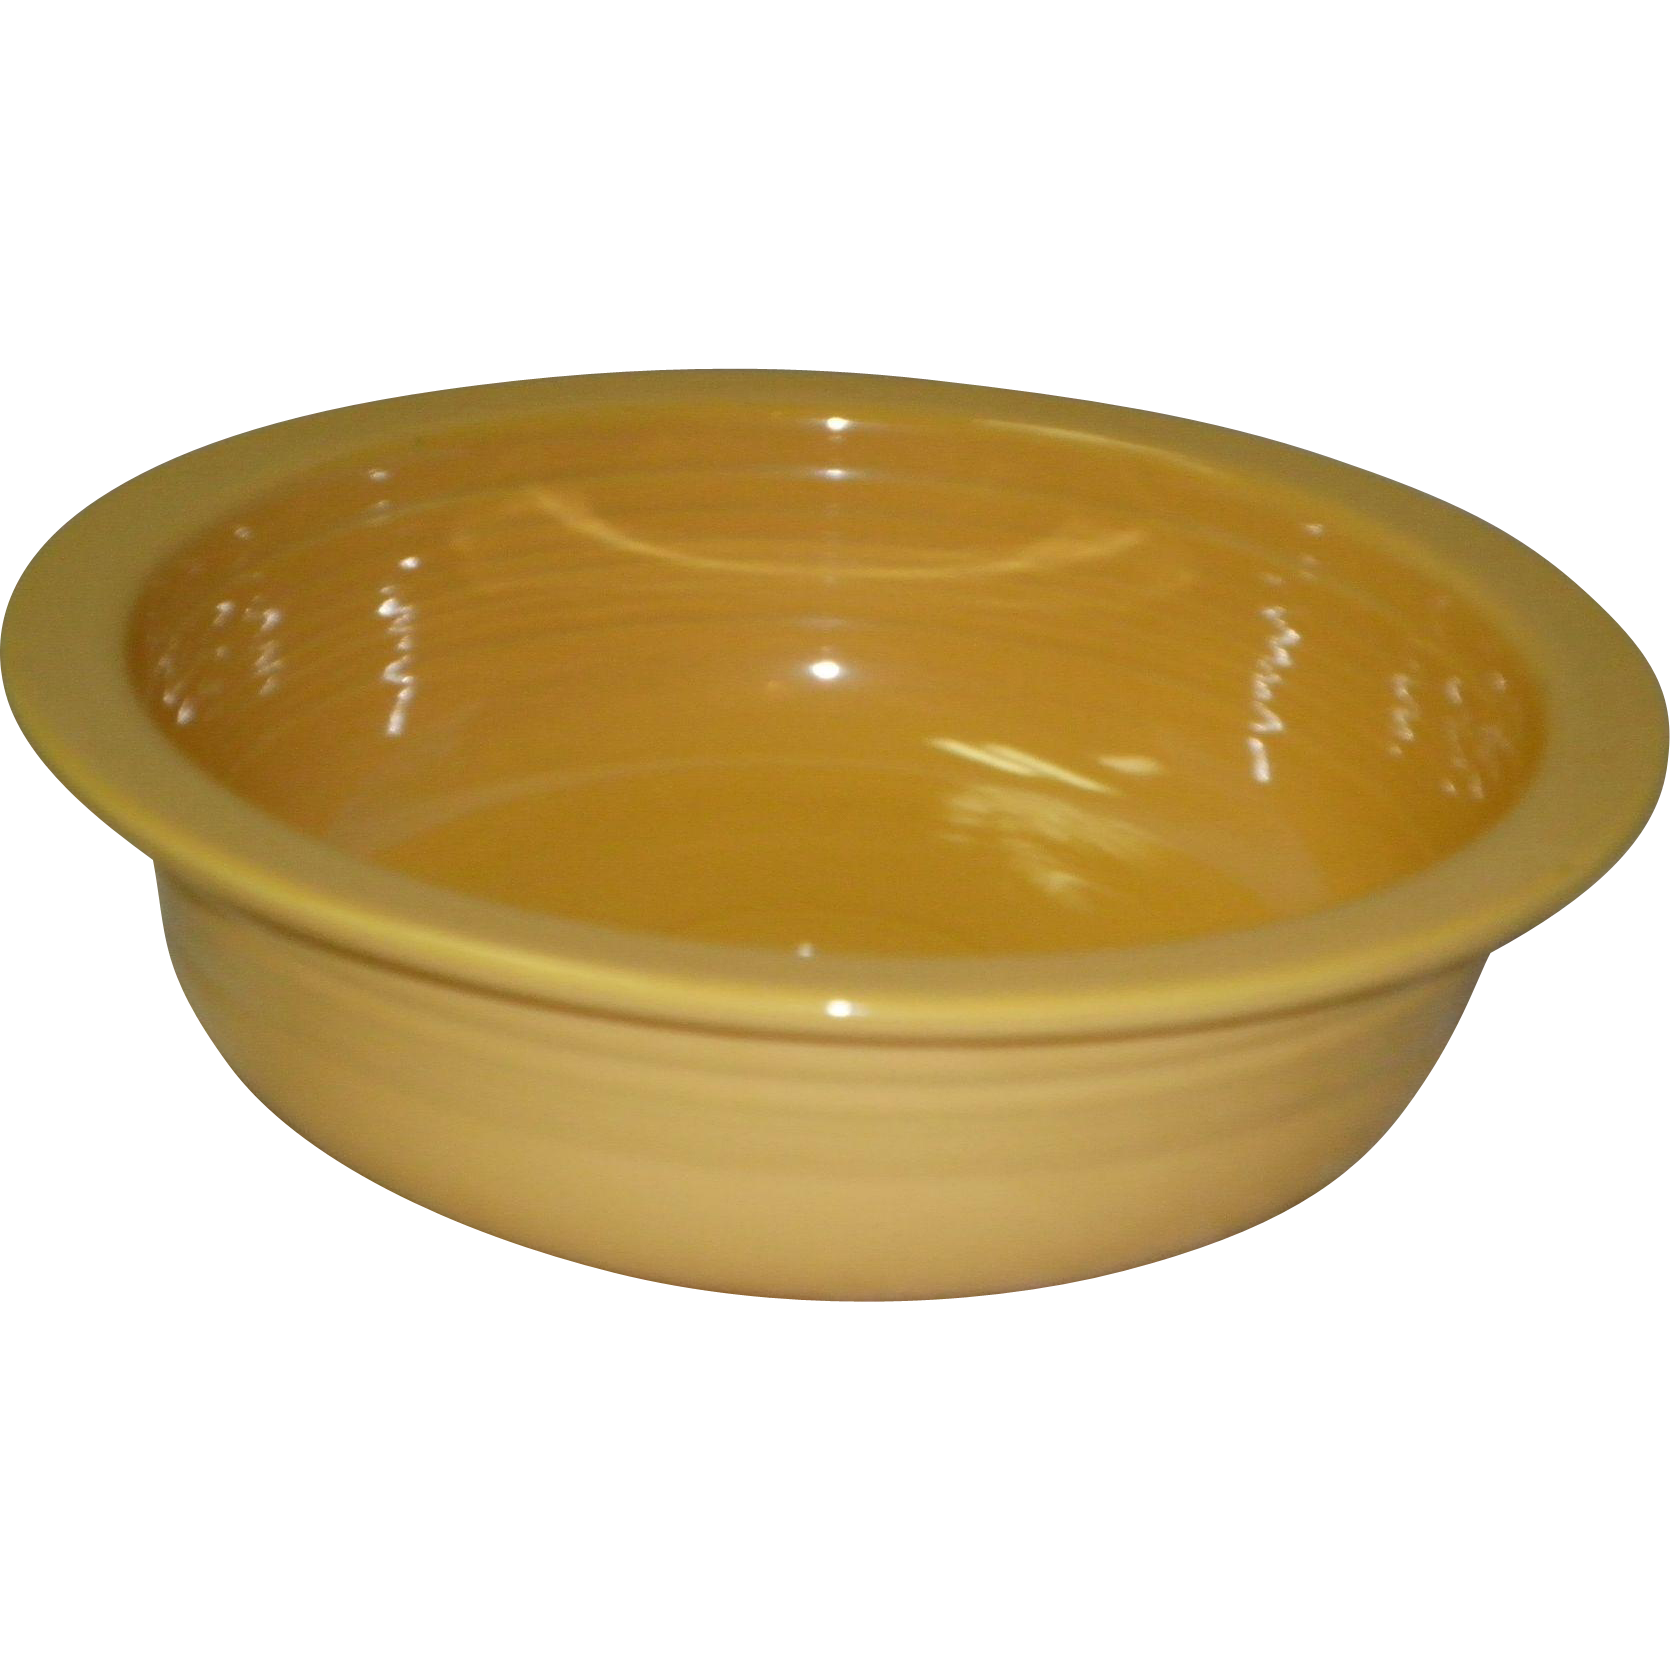 "Fiesta 8 1/2"" Yellow Bowl"